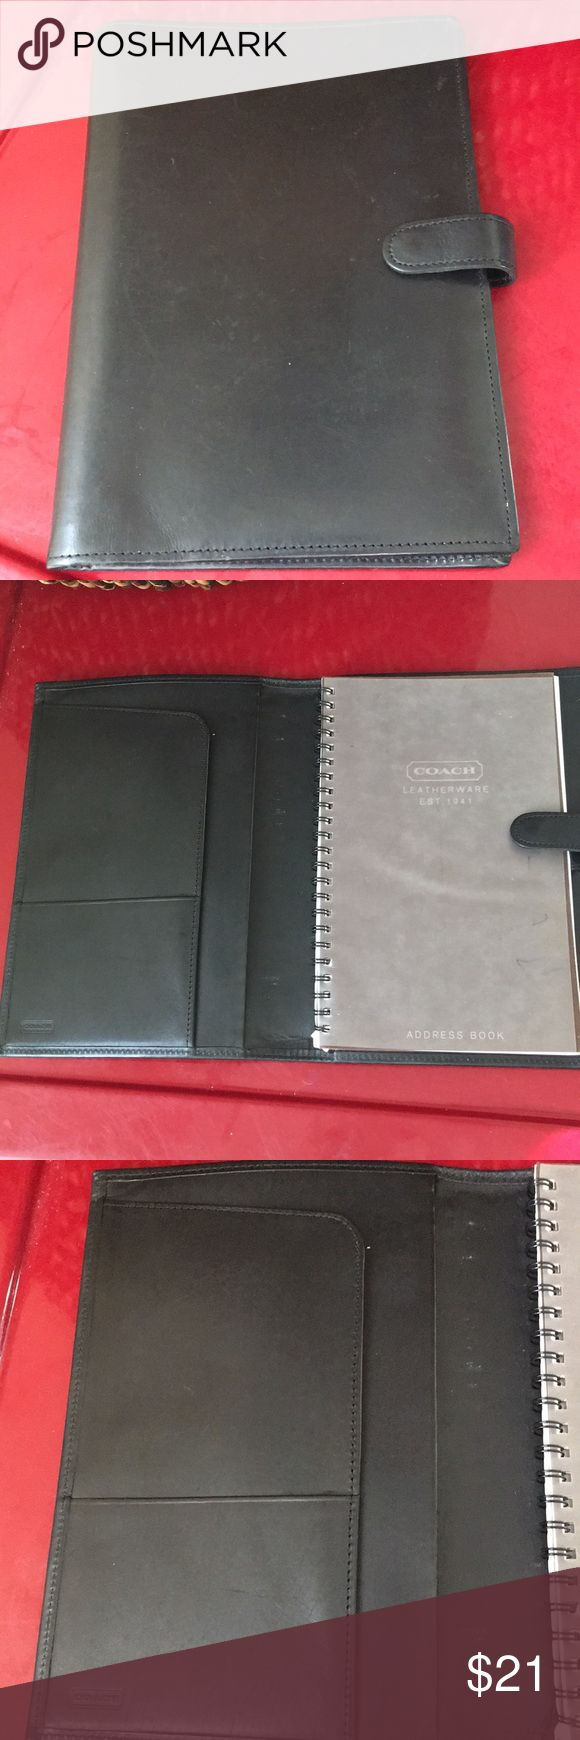 Authentic Coach Black Leather Address Book Good condition - approx. 20 years old - you will need a news address book insert. Has normal wear and tear. Just cleaned and conditioned. You can purchase the address book and calendar online at Coach.com Coach Accessories